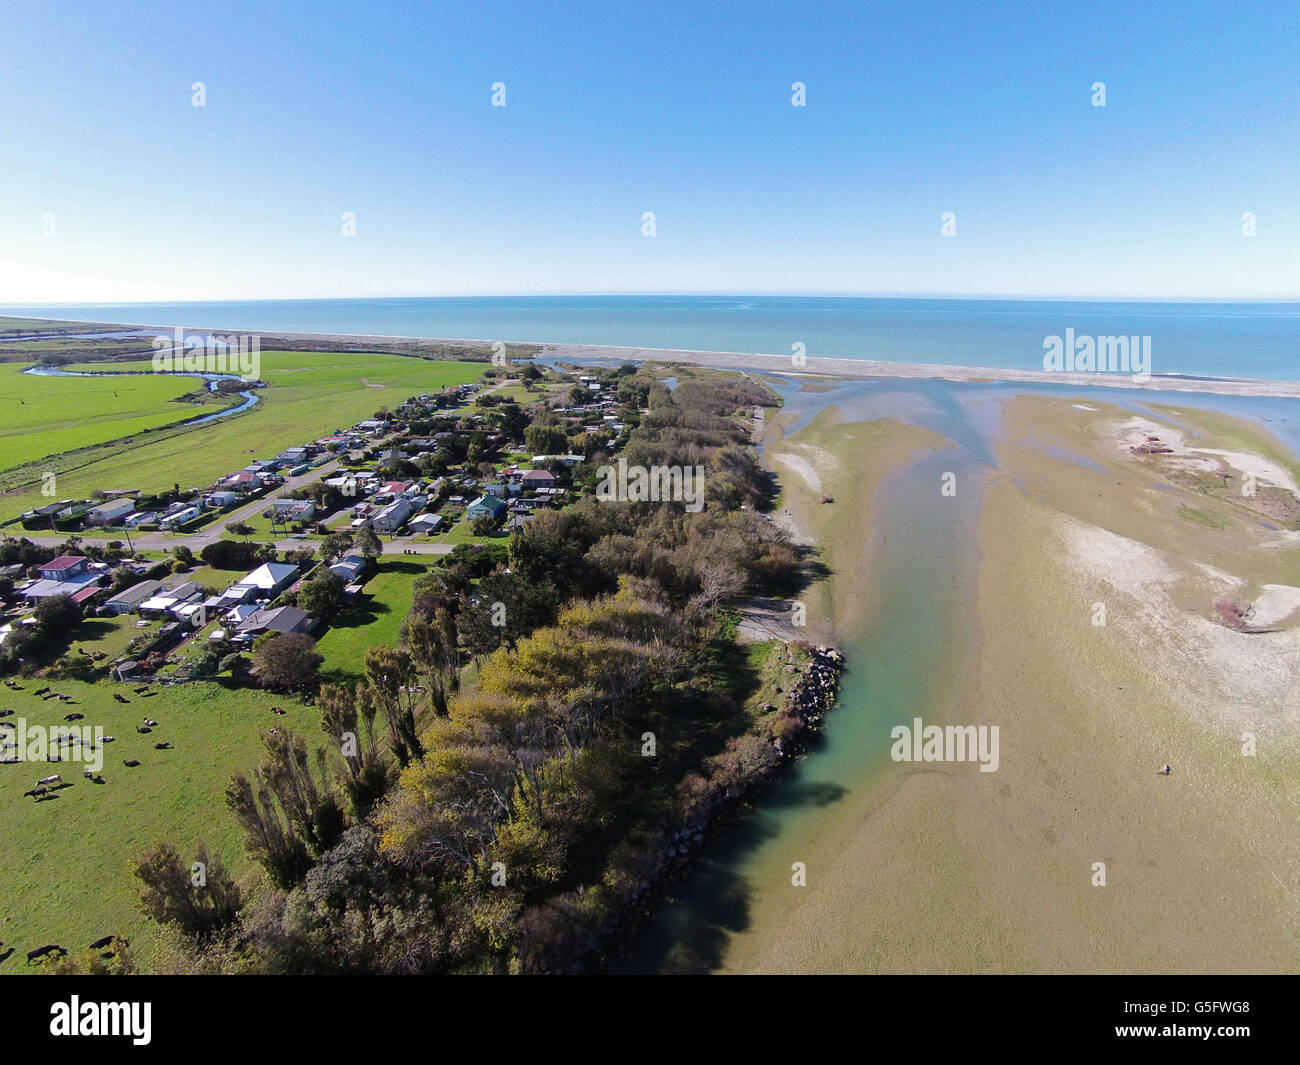 Opihi River Mouth, and Milford Huts, near Temuka, South Canterbury, South Island, New Zealand - drone aerial Stock Photo